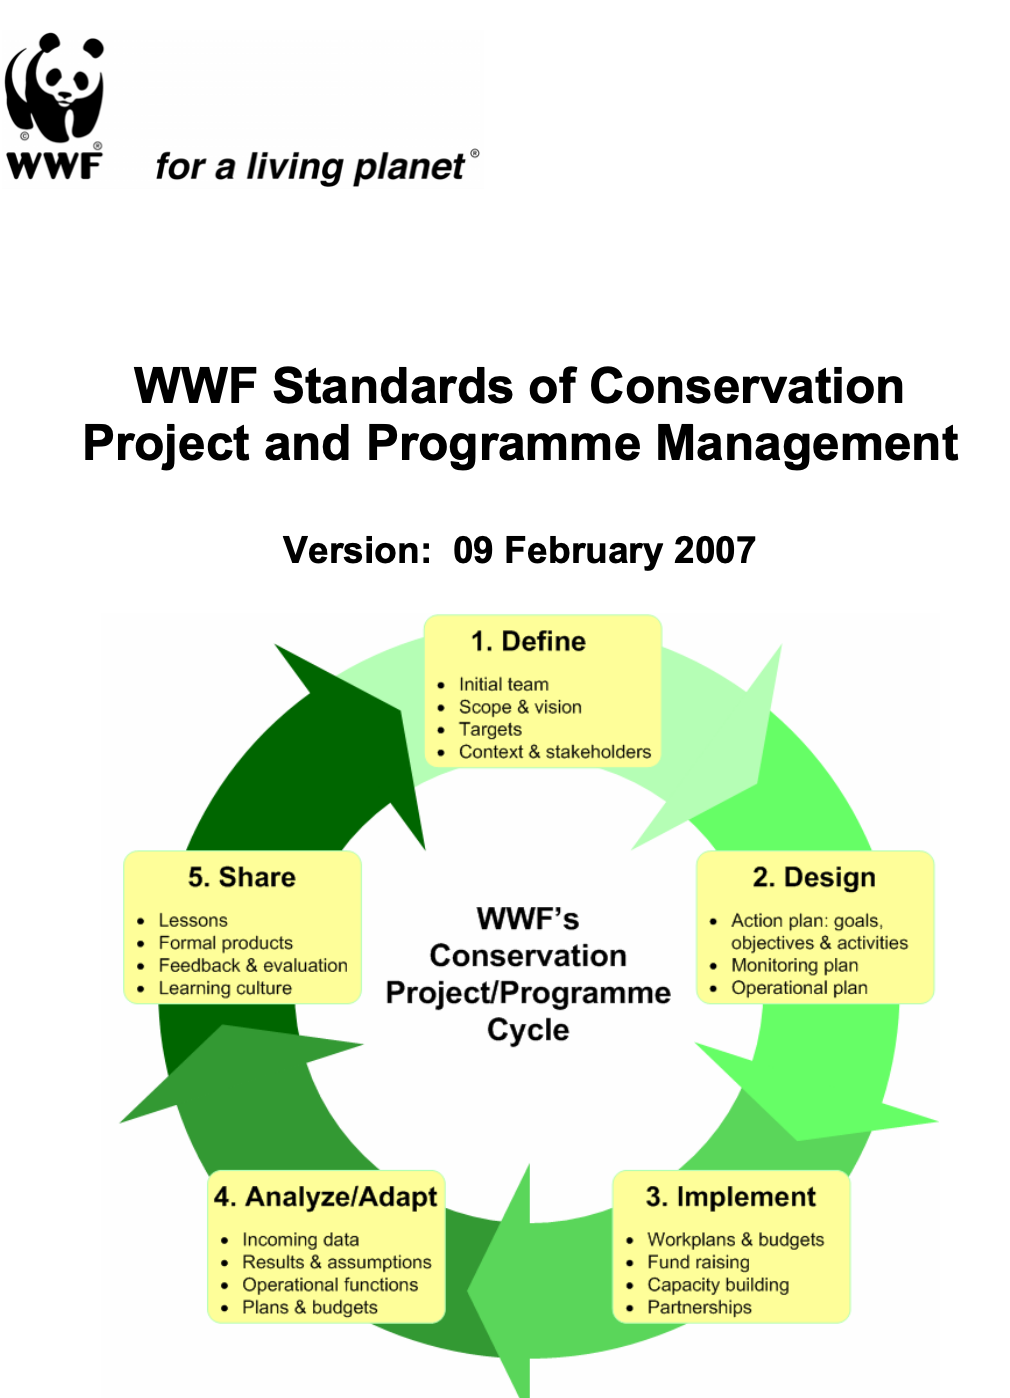 WWF Standards of Conservation Project and Programme Management